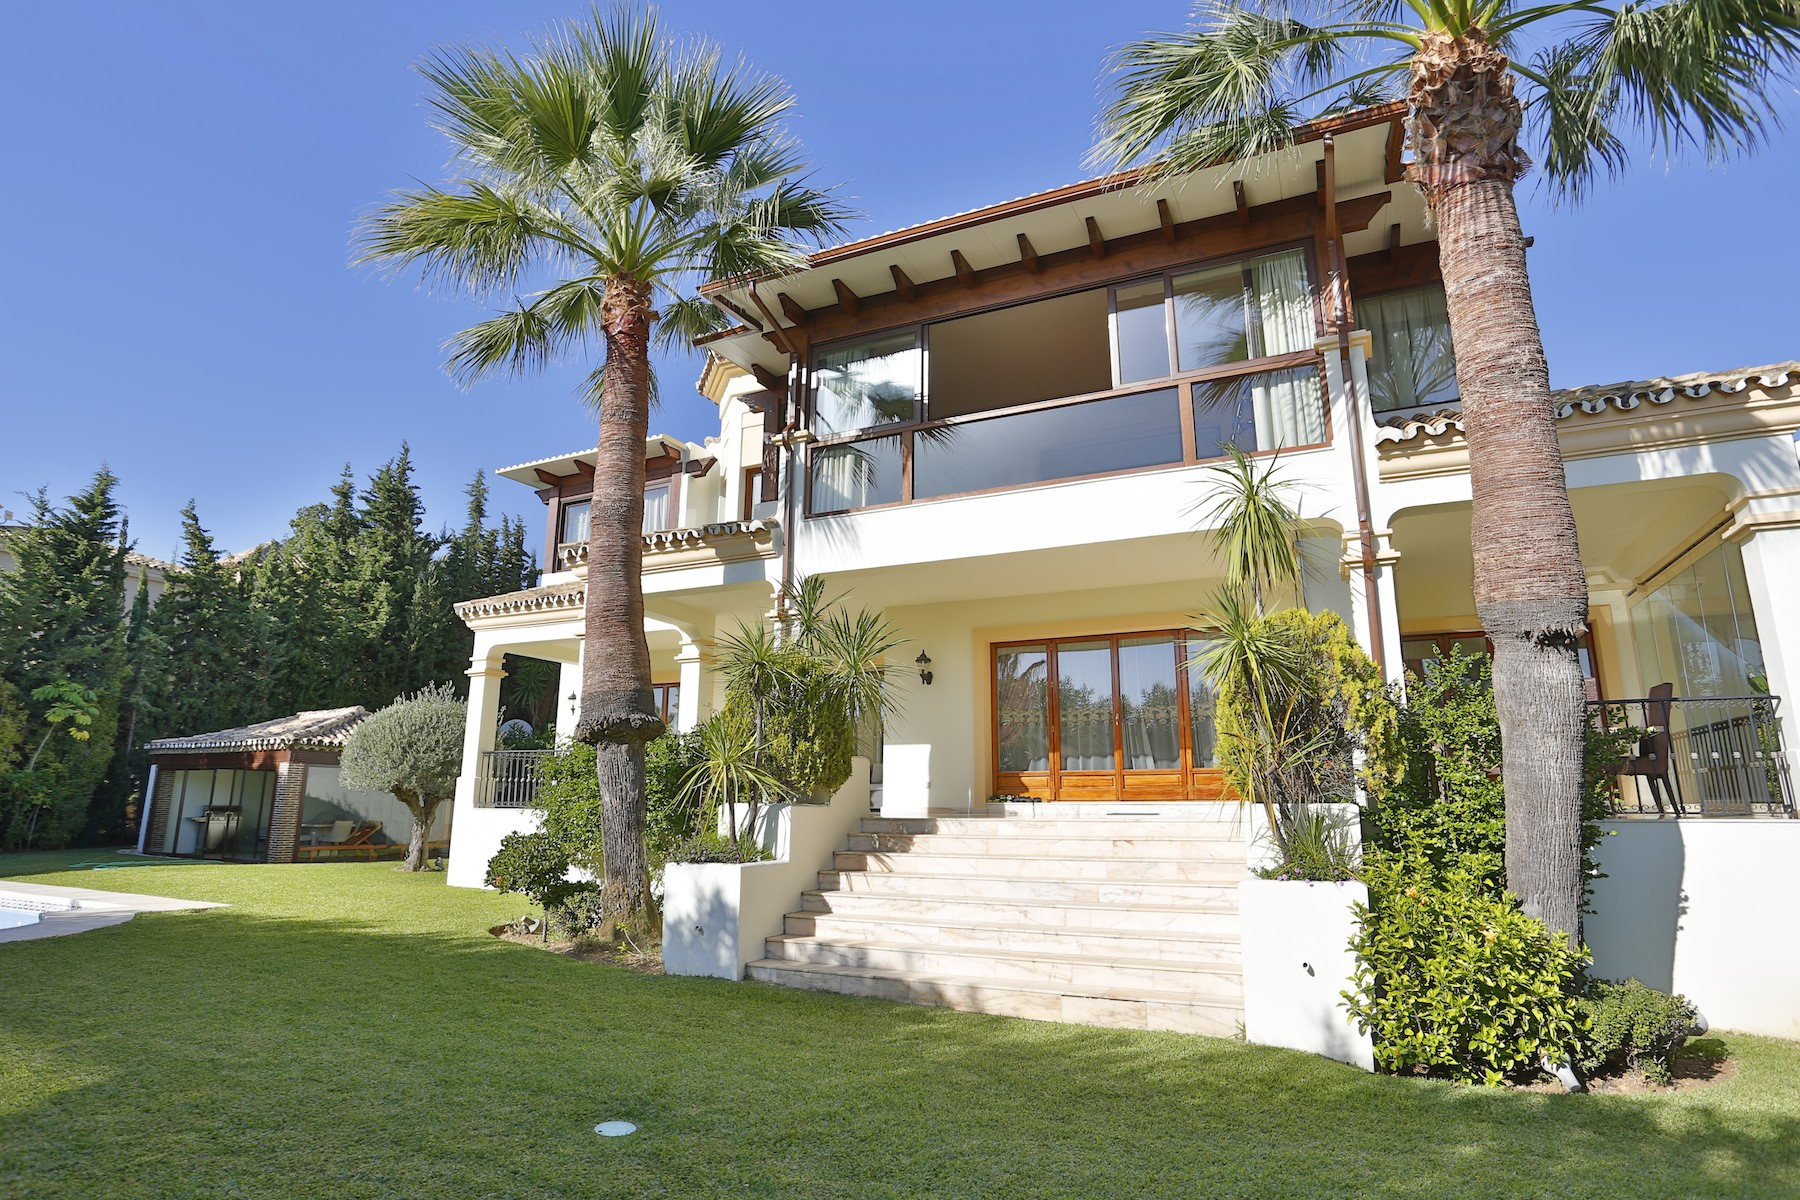 Vivienda unifamiliar por un Venta en Elegant villa situated in the best sought after residential area in Marbella Sierra Blanca Marbella, Costa Del Sol, 29600 España